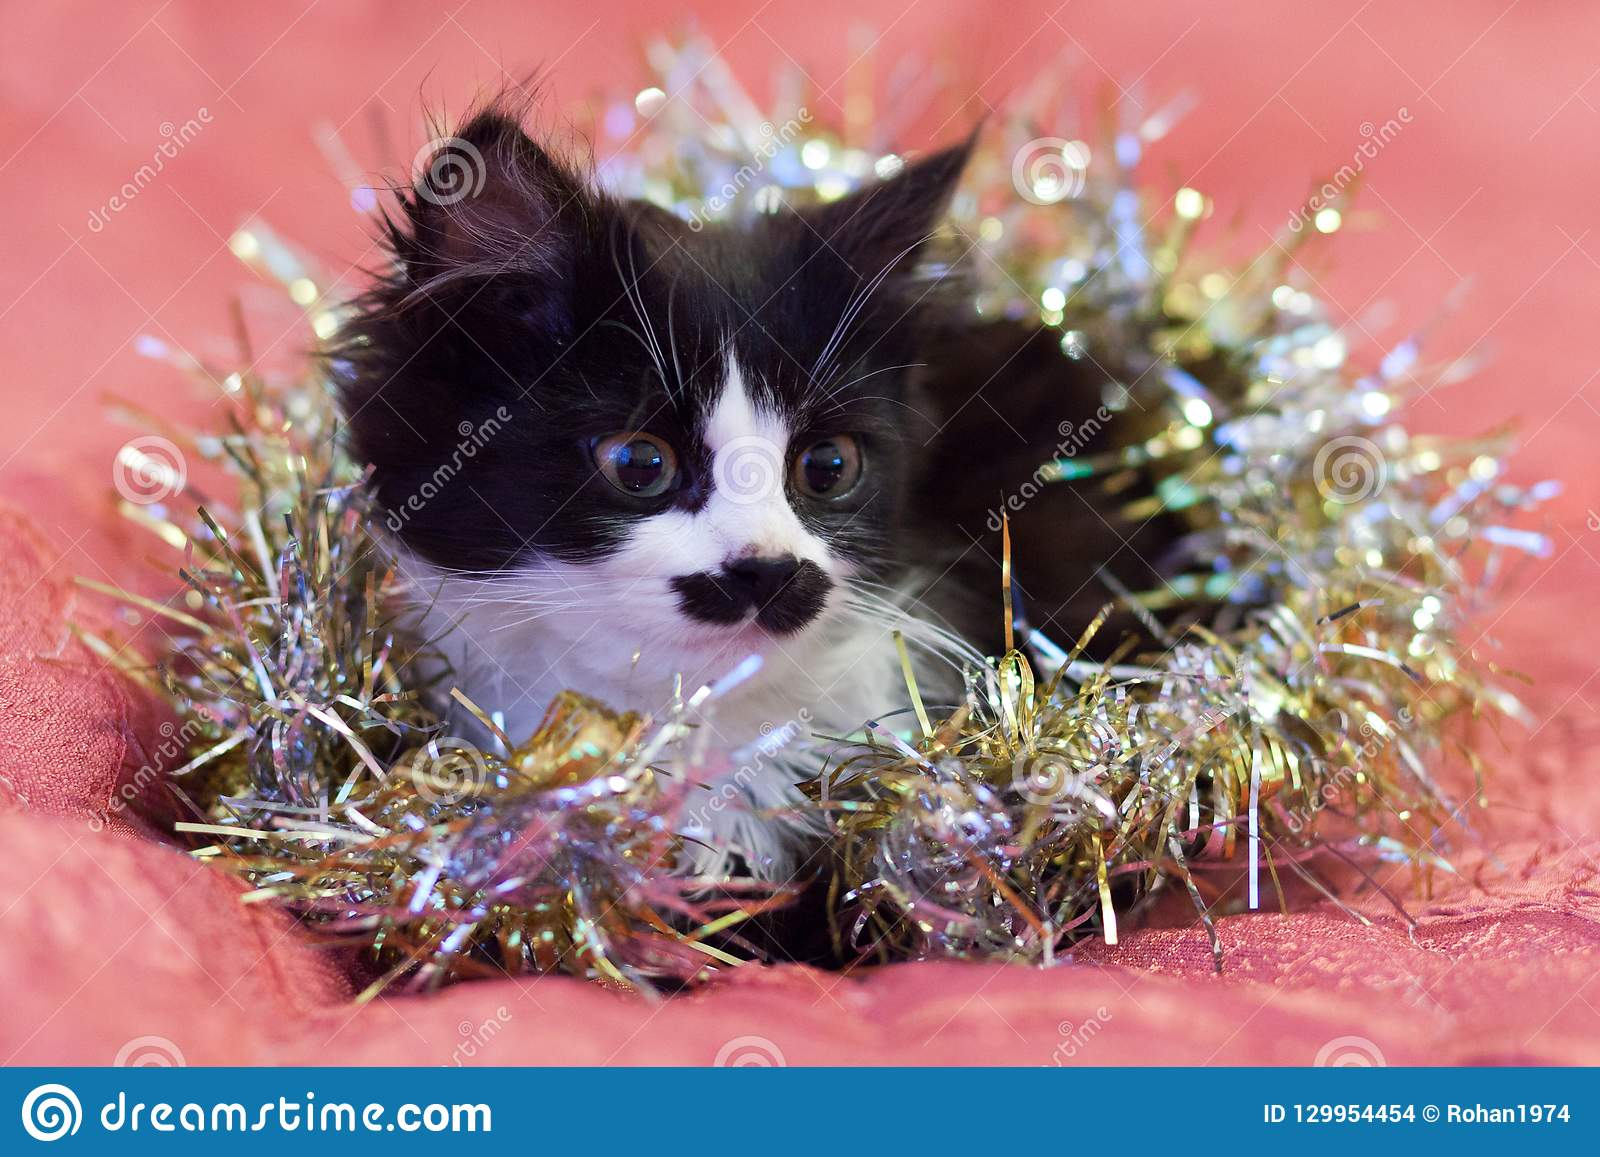 Handsome black and white cat covered in silver tinsel - a Christmas kitty. Pink background